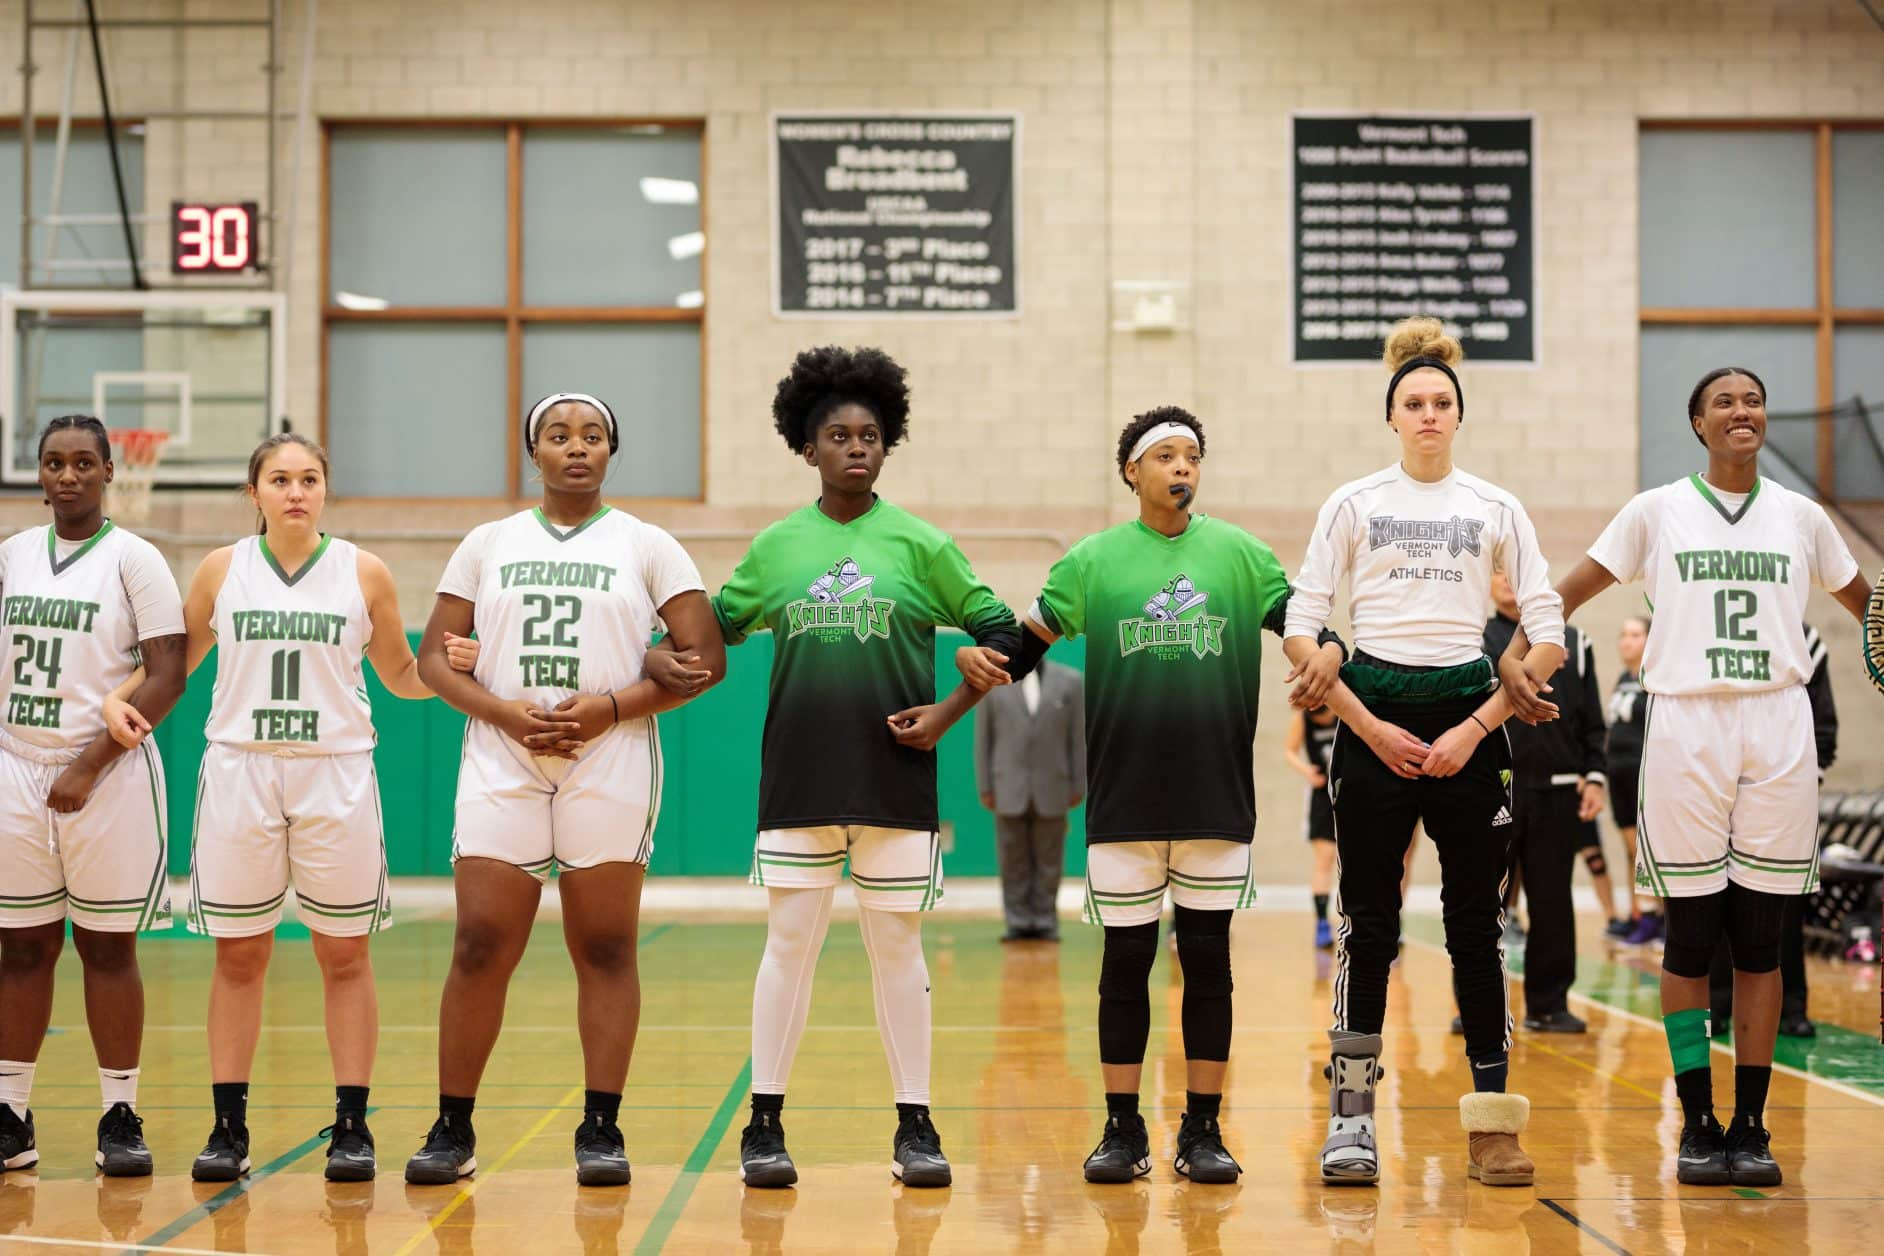 Women's baskeball team, standing together, game, uniforms